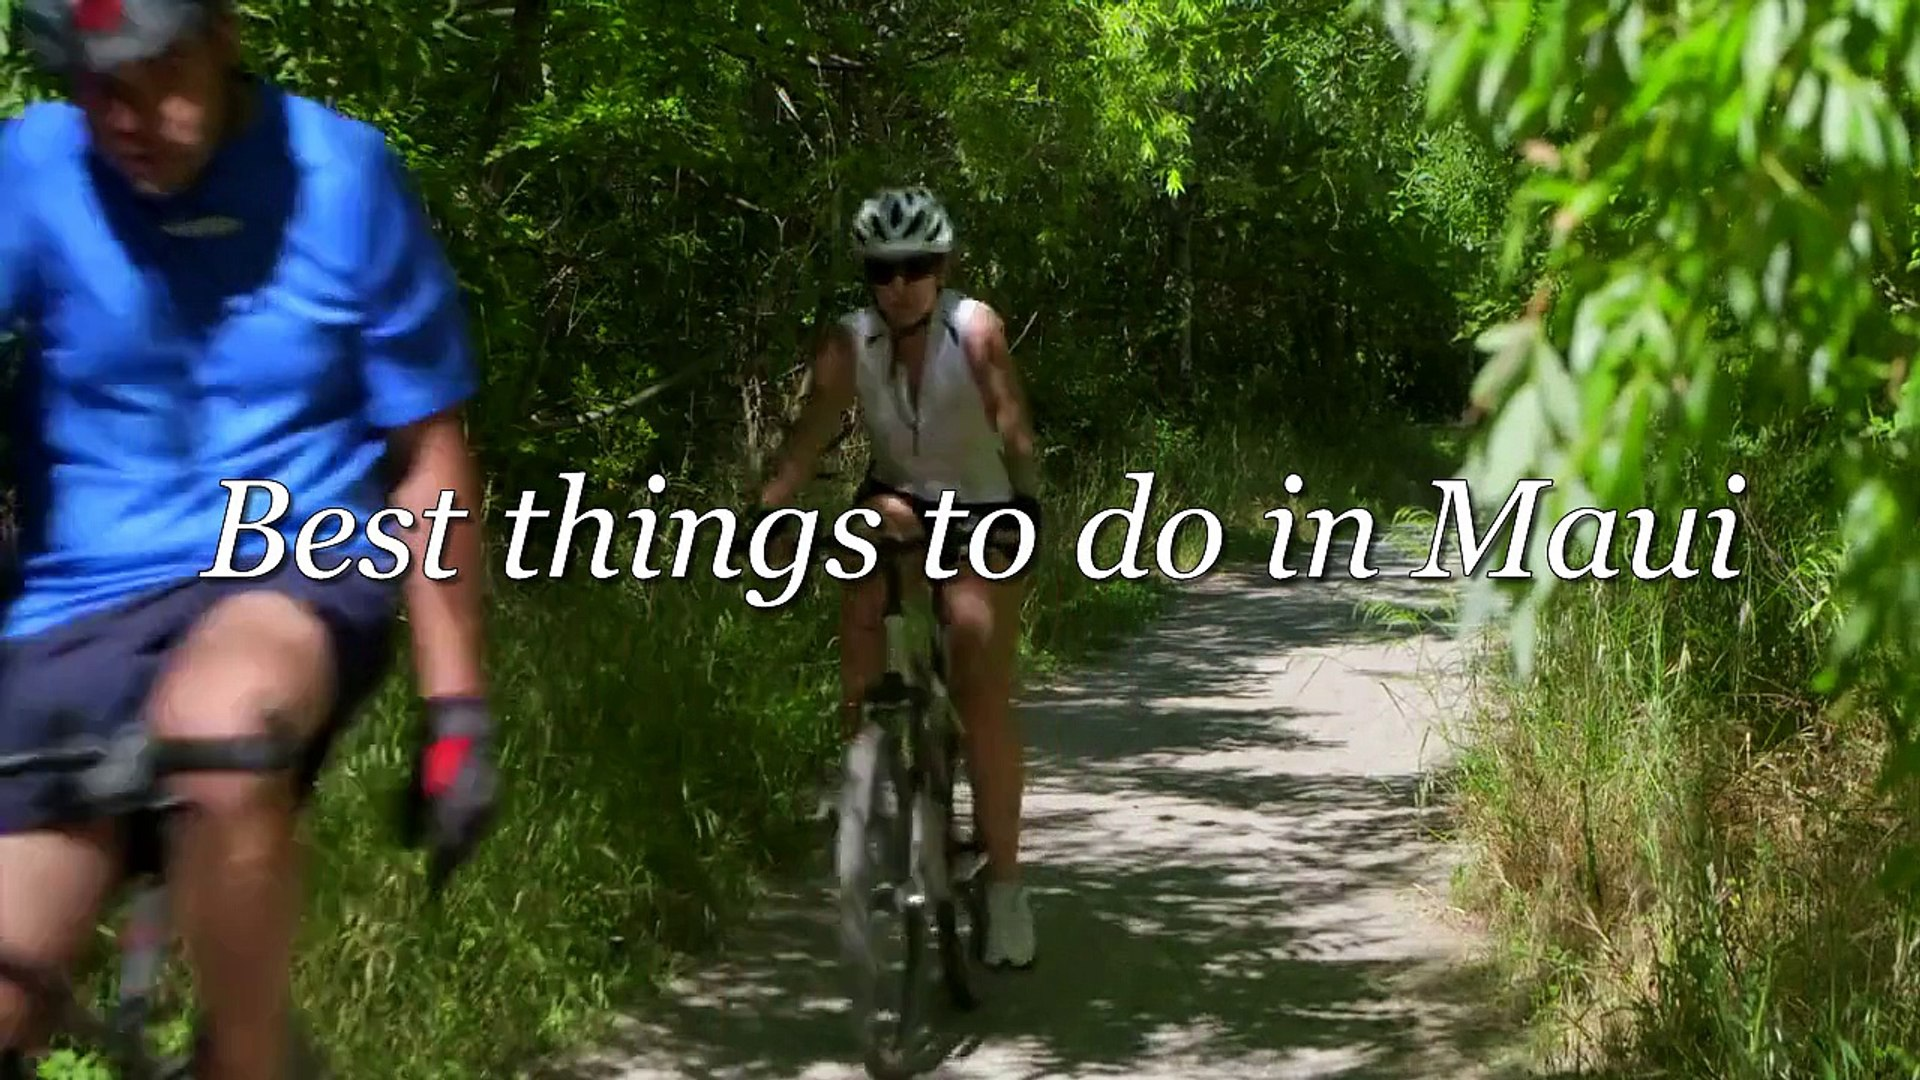 Best things to do in Maui   SegwayMaui